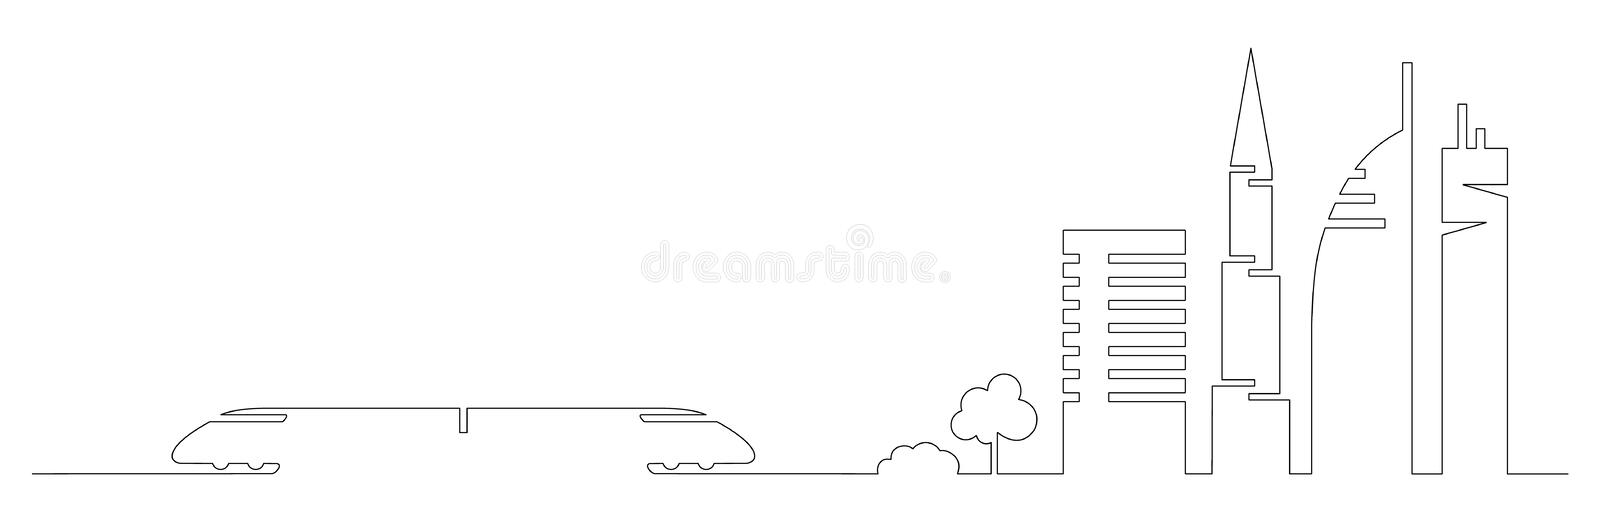 Flat artistic one line design vector city train and city buildings, skyscrapers, trees shape silhouettes drawn in minimalism slyle stock illustration